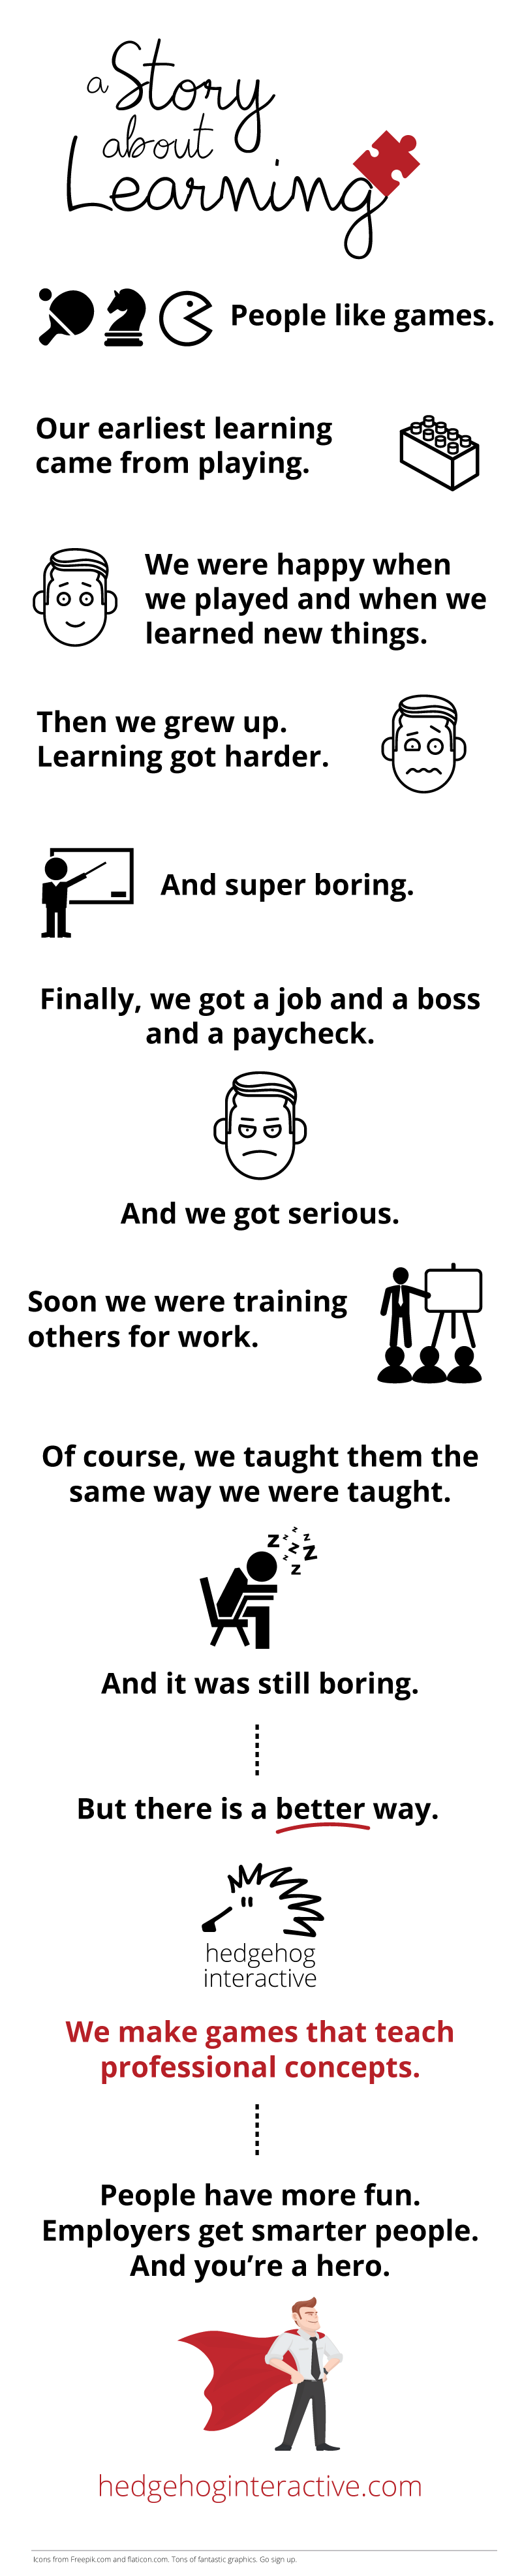 A Story about Learning